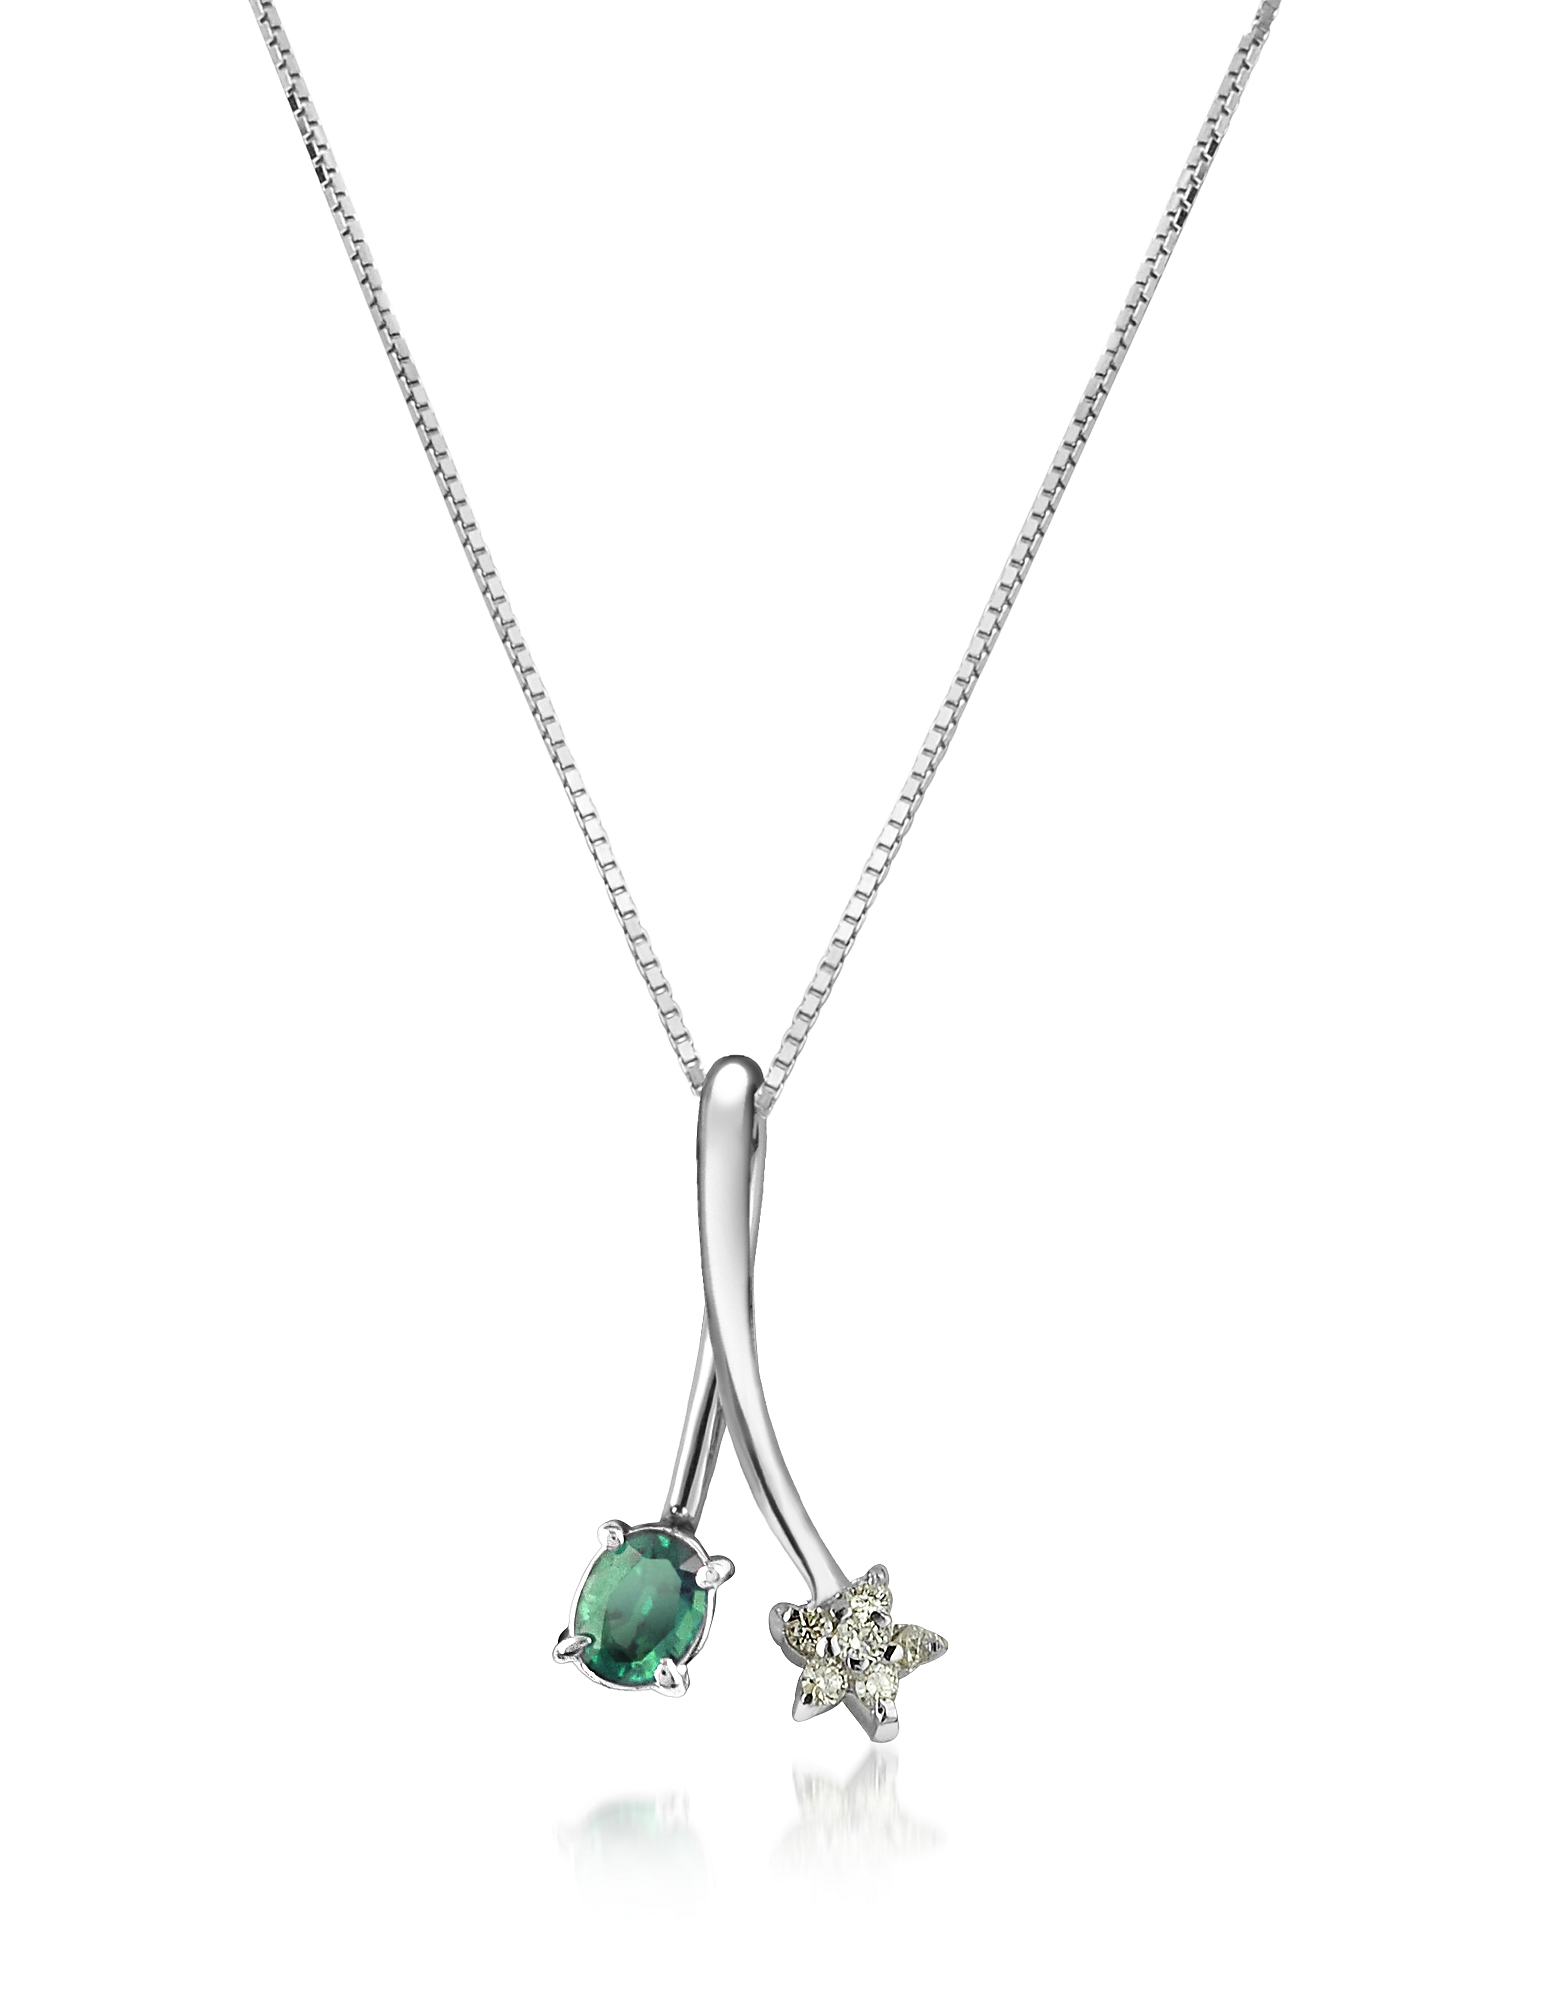 Incanto Royale Necklaces, Diamond Star and Emerald 18K Gold Pendant Necklace